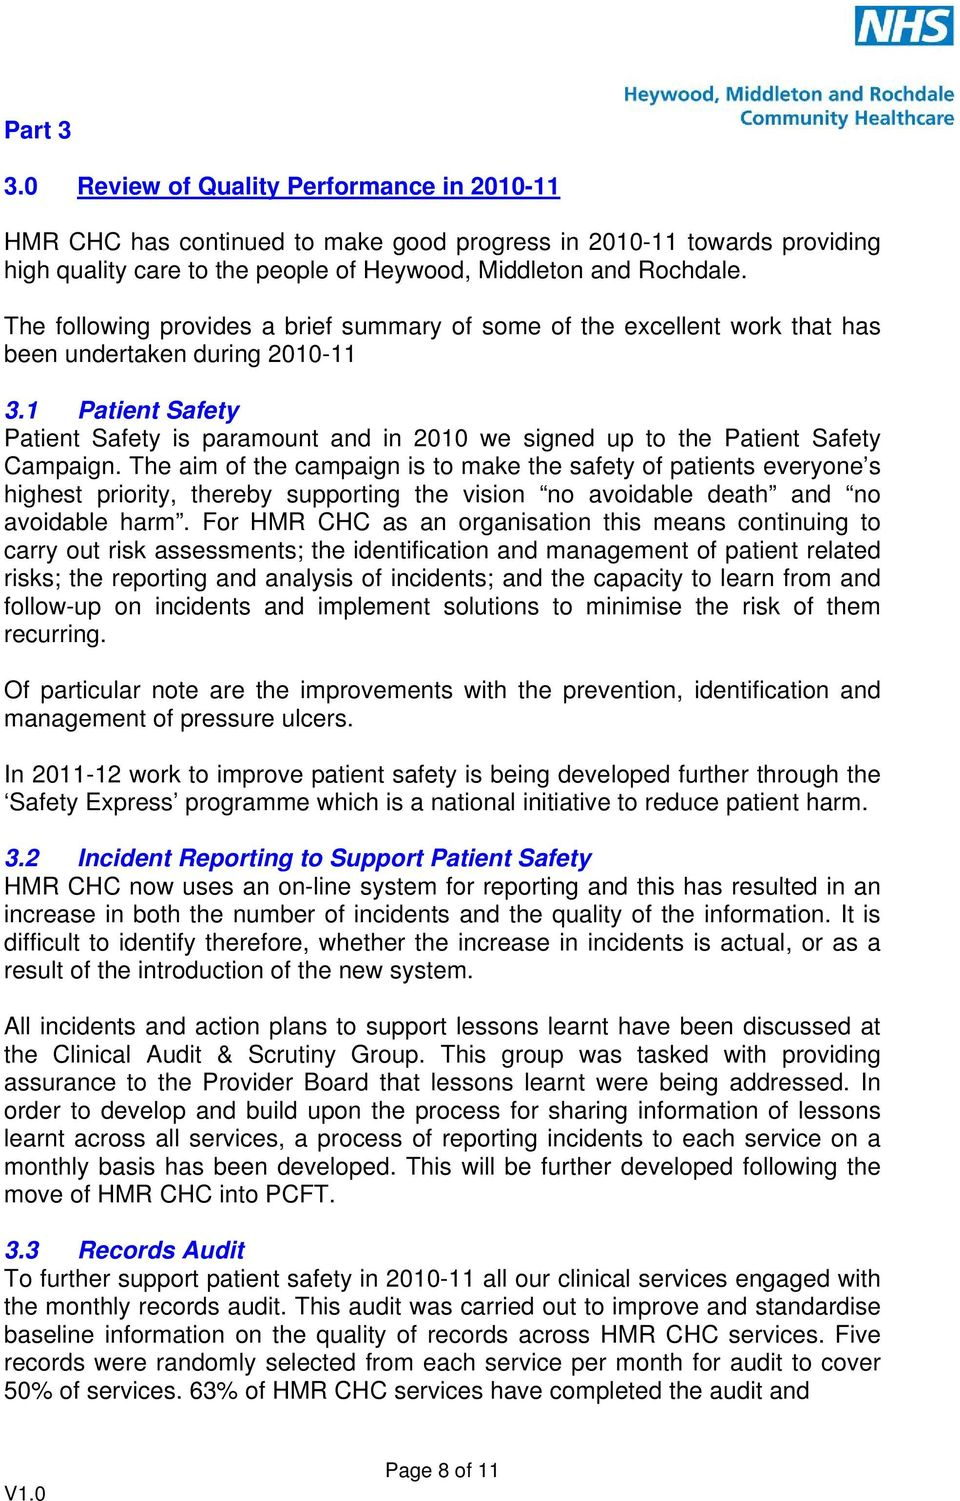 1 Patient Safety Patient Safety is paramount and in 2010 we signed up to the Patient Safety Campaign.